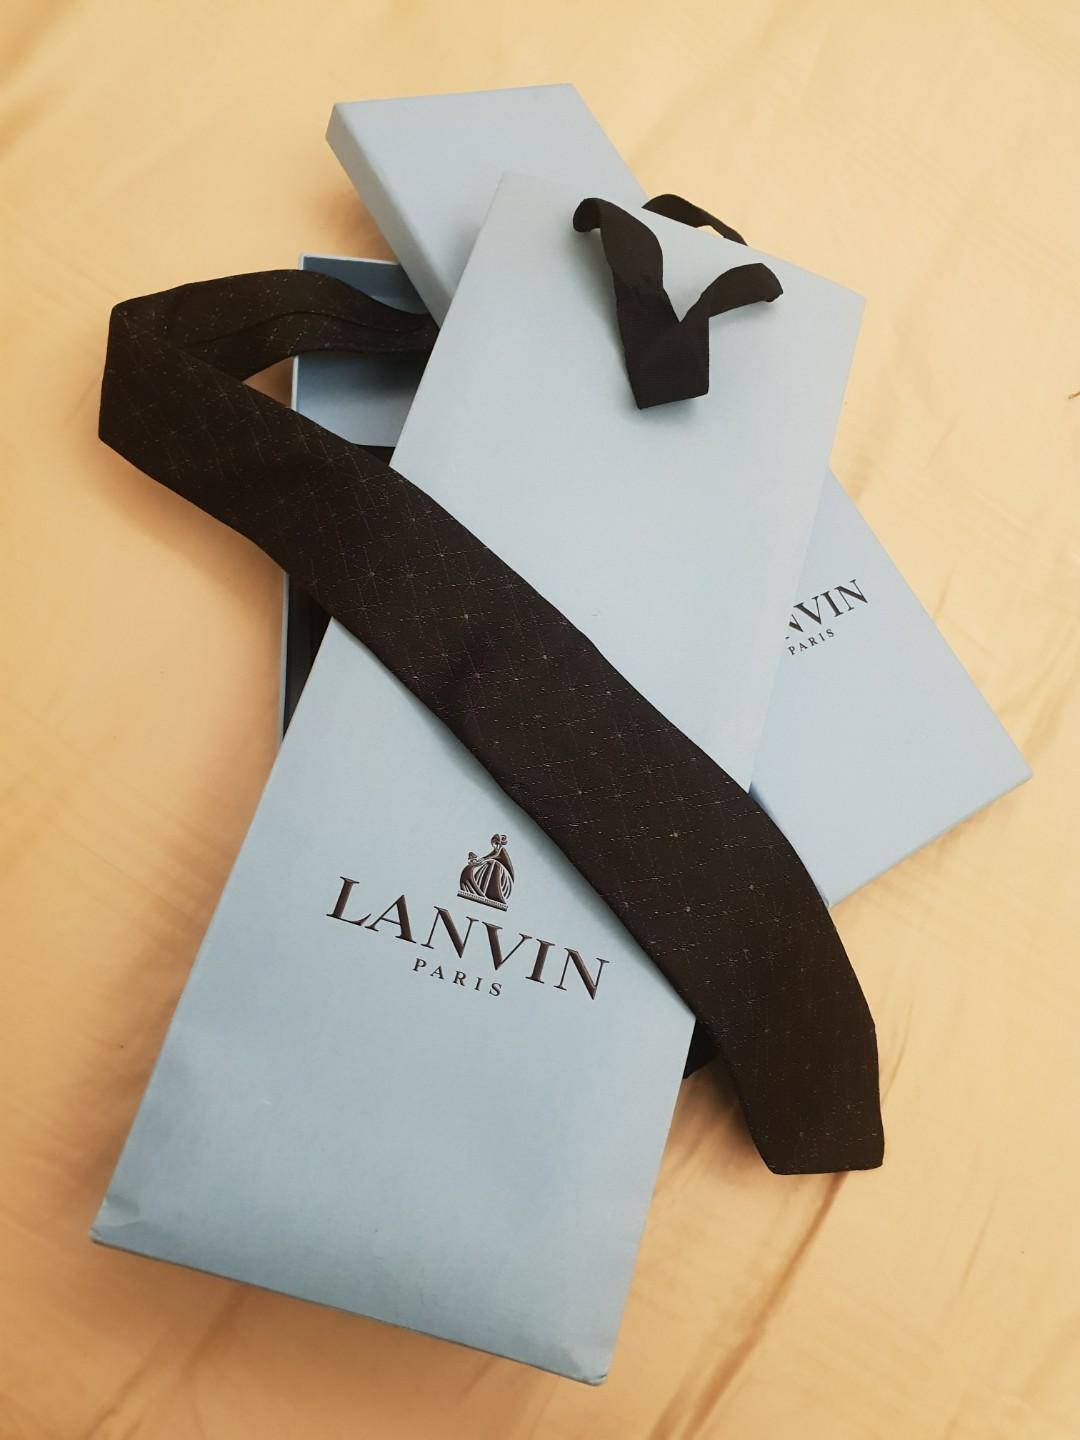 Lanvin men black tie 100% authentic